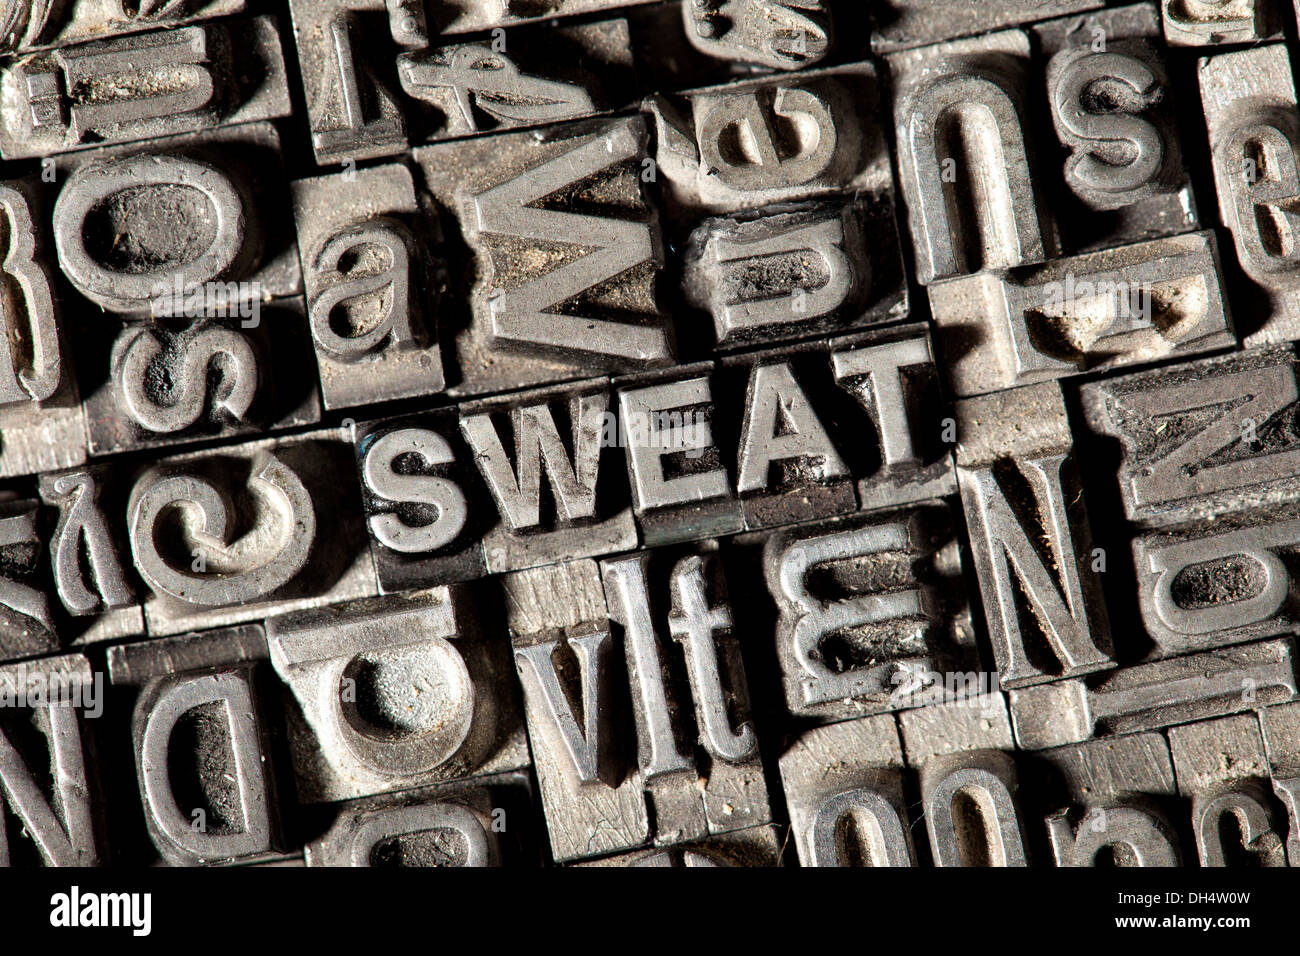 Old lead letters forming the word 'SWEAT' - Stock Image